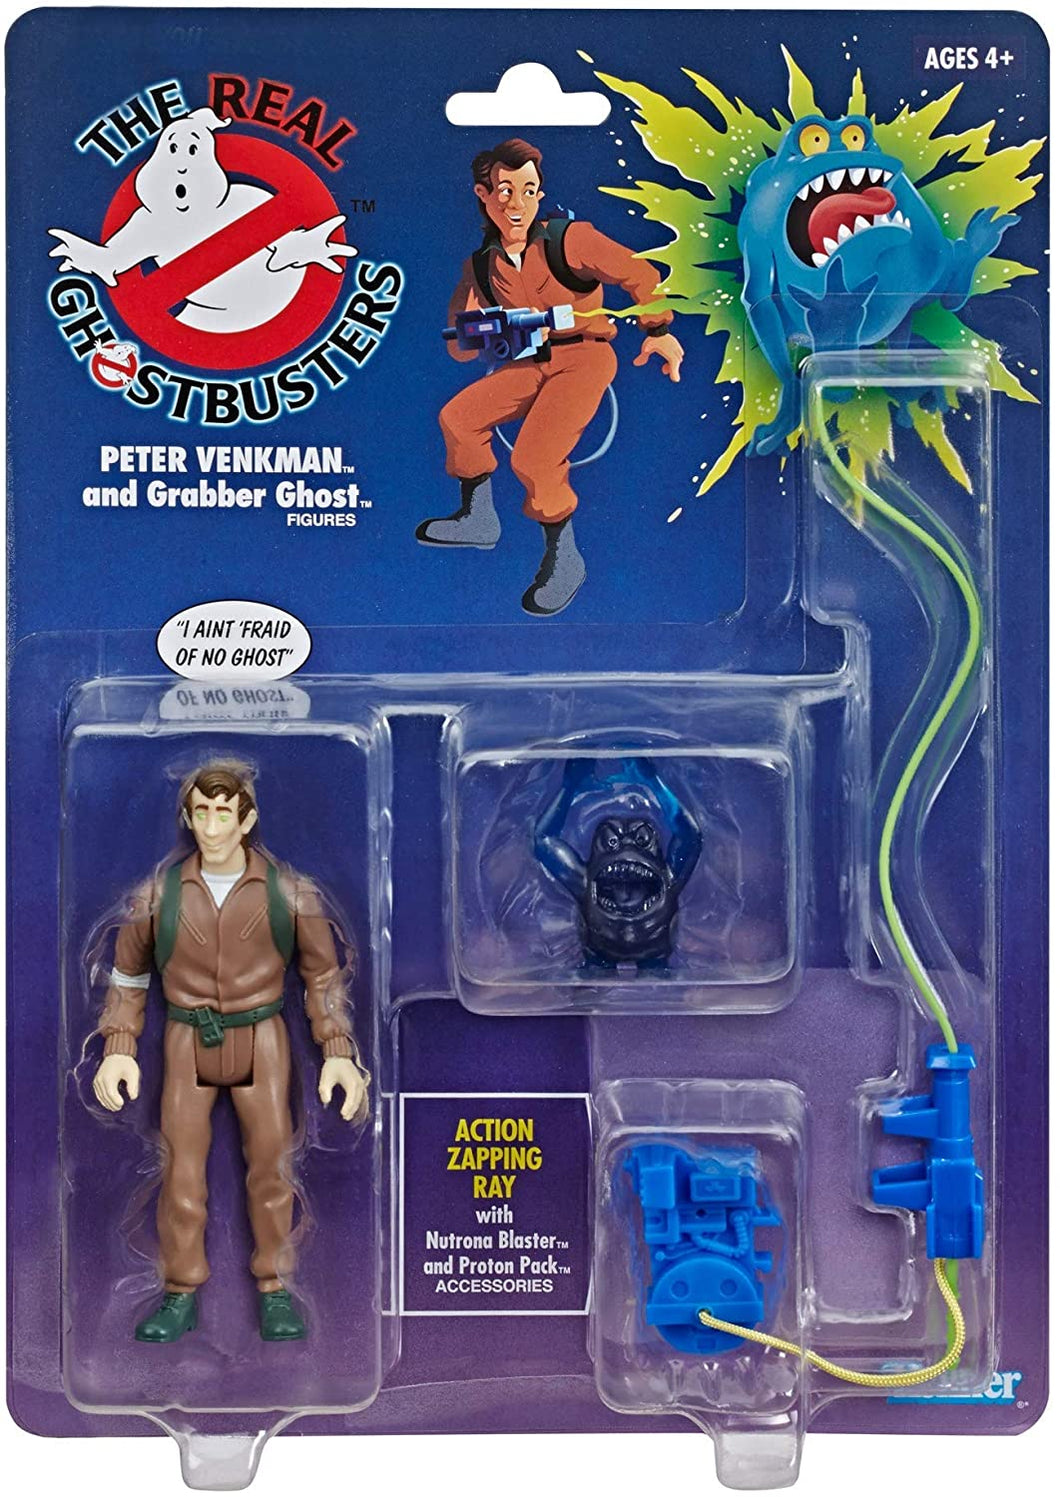 The Real Ghostbusters Kenner Classics Retro Figure - Peter Venkman and Grabber Ghost - Walmart Exclusive